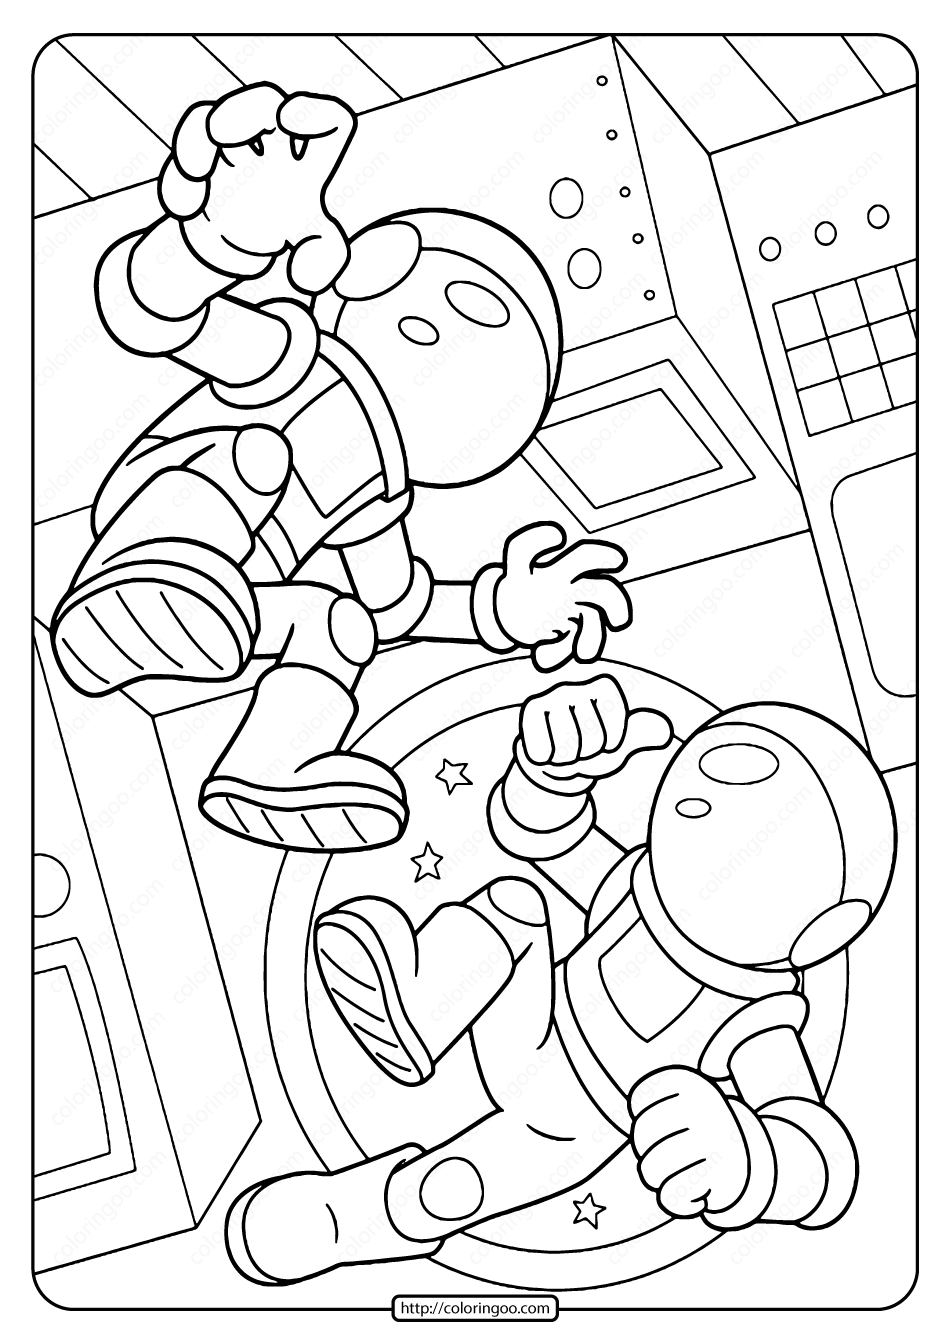 space coloring pages to print space coloring pages best coloring pages for kids coloring pages to space print